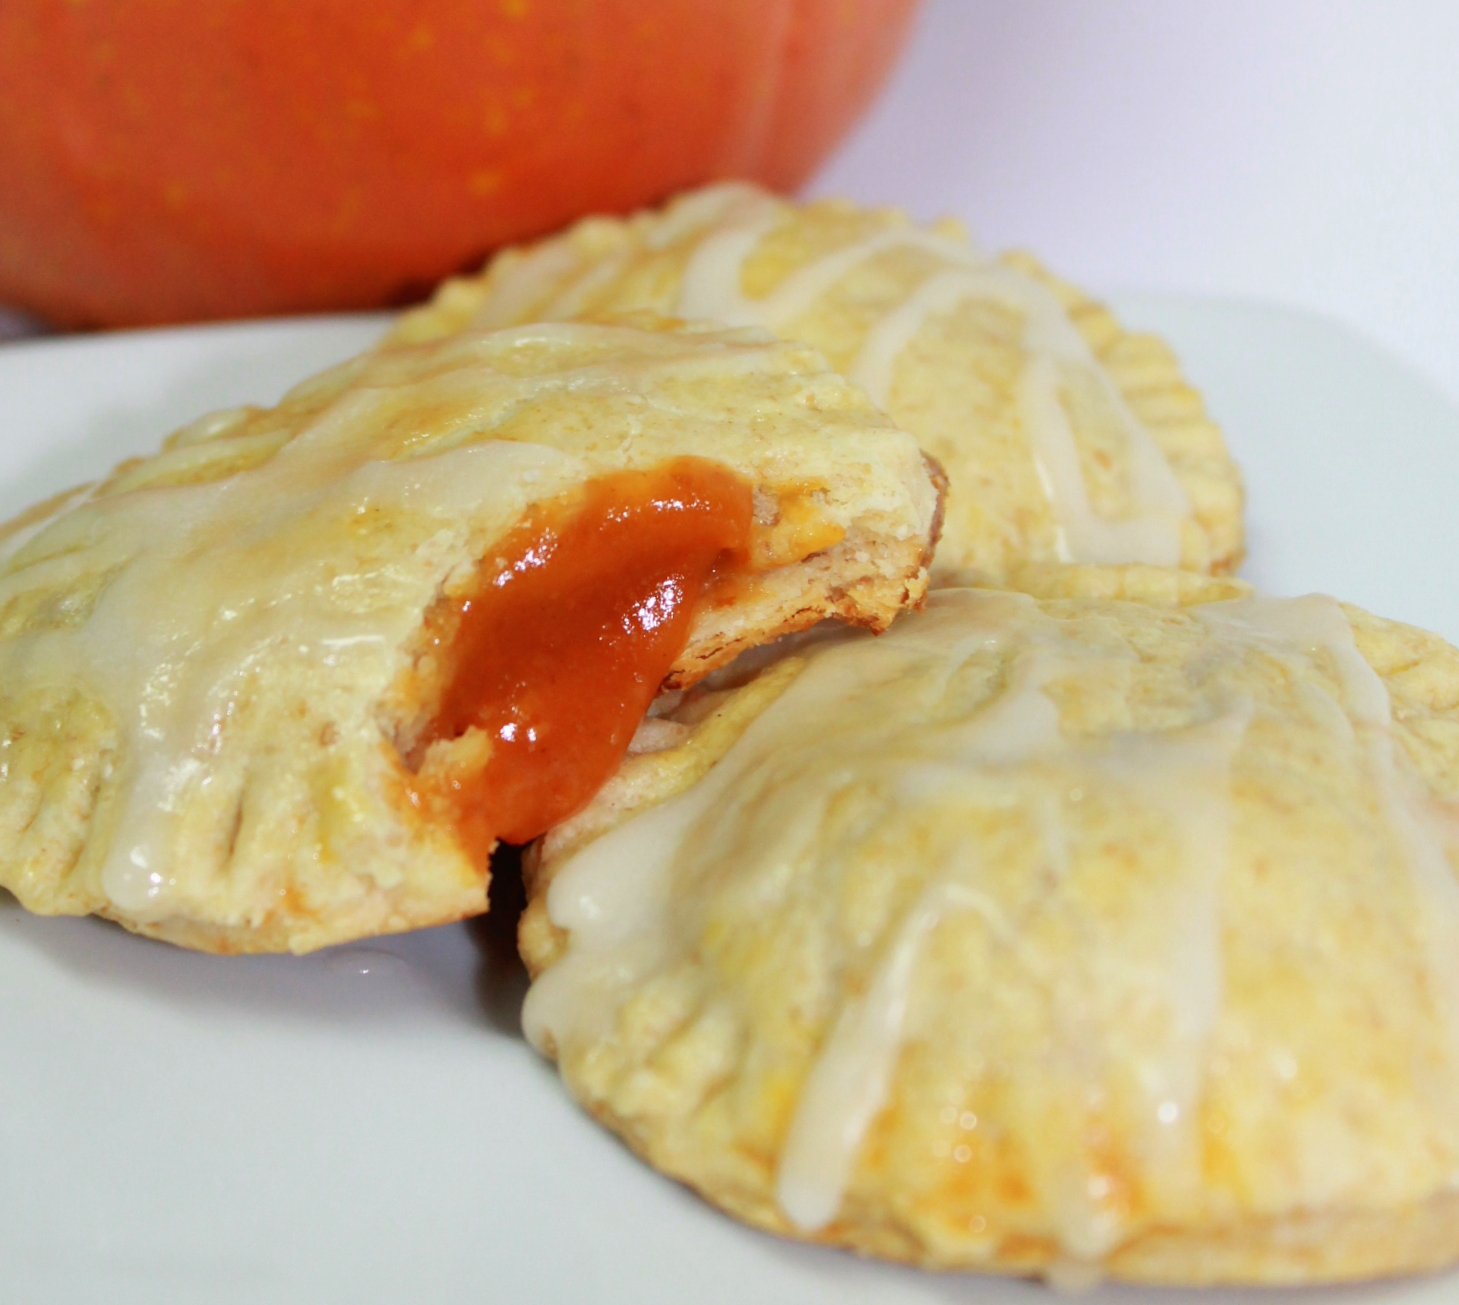 Pumpkin Pie Pop Tarts with Caramel Glaze | Inspired by FamiliaInspired ...